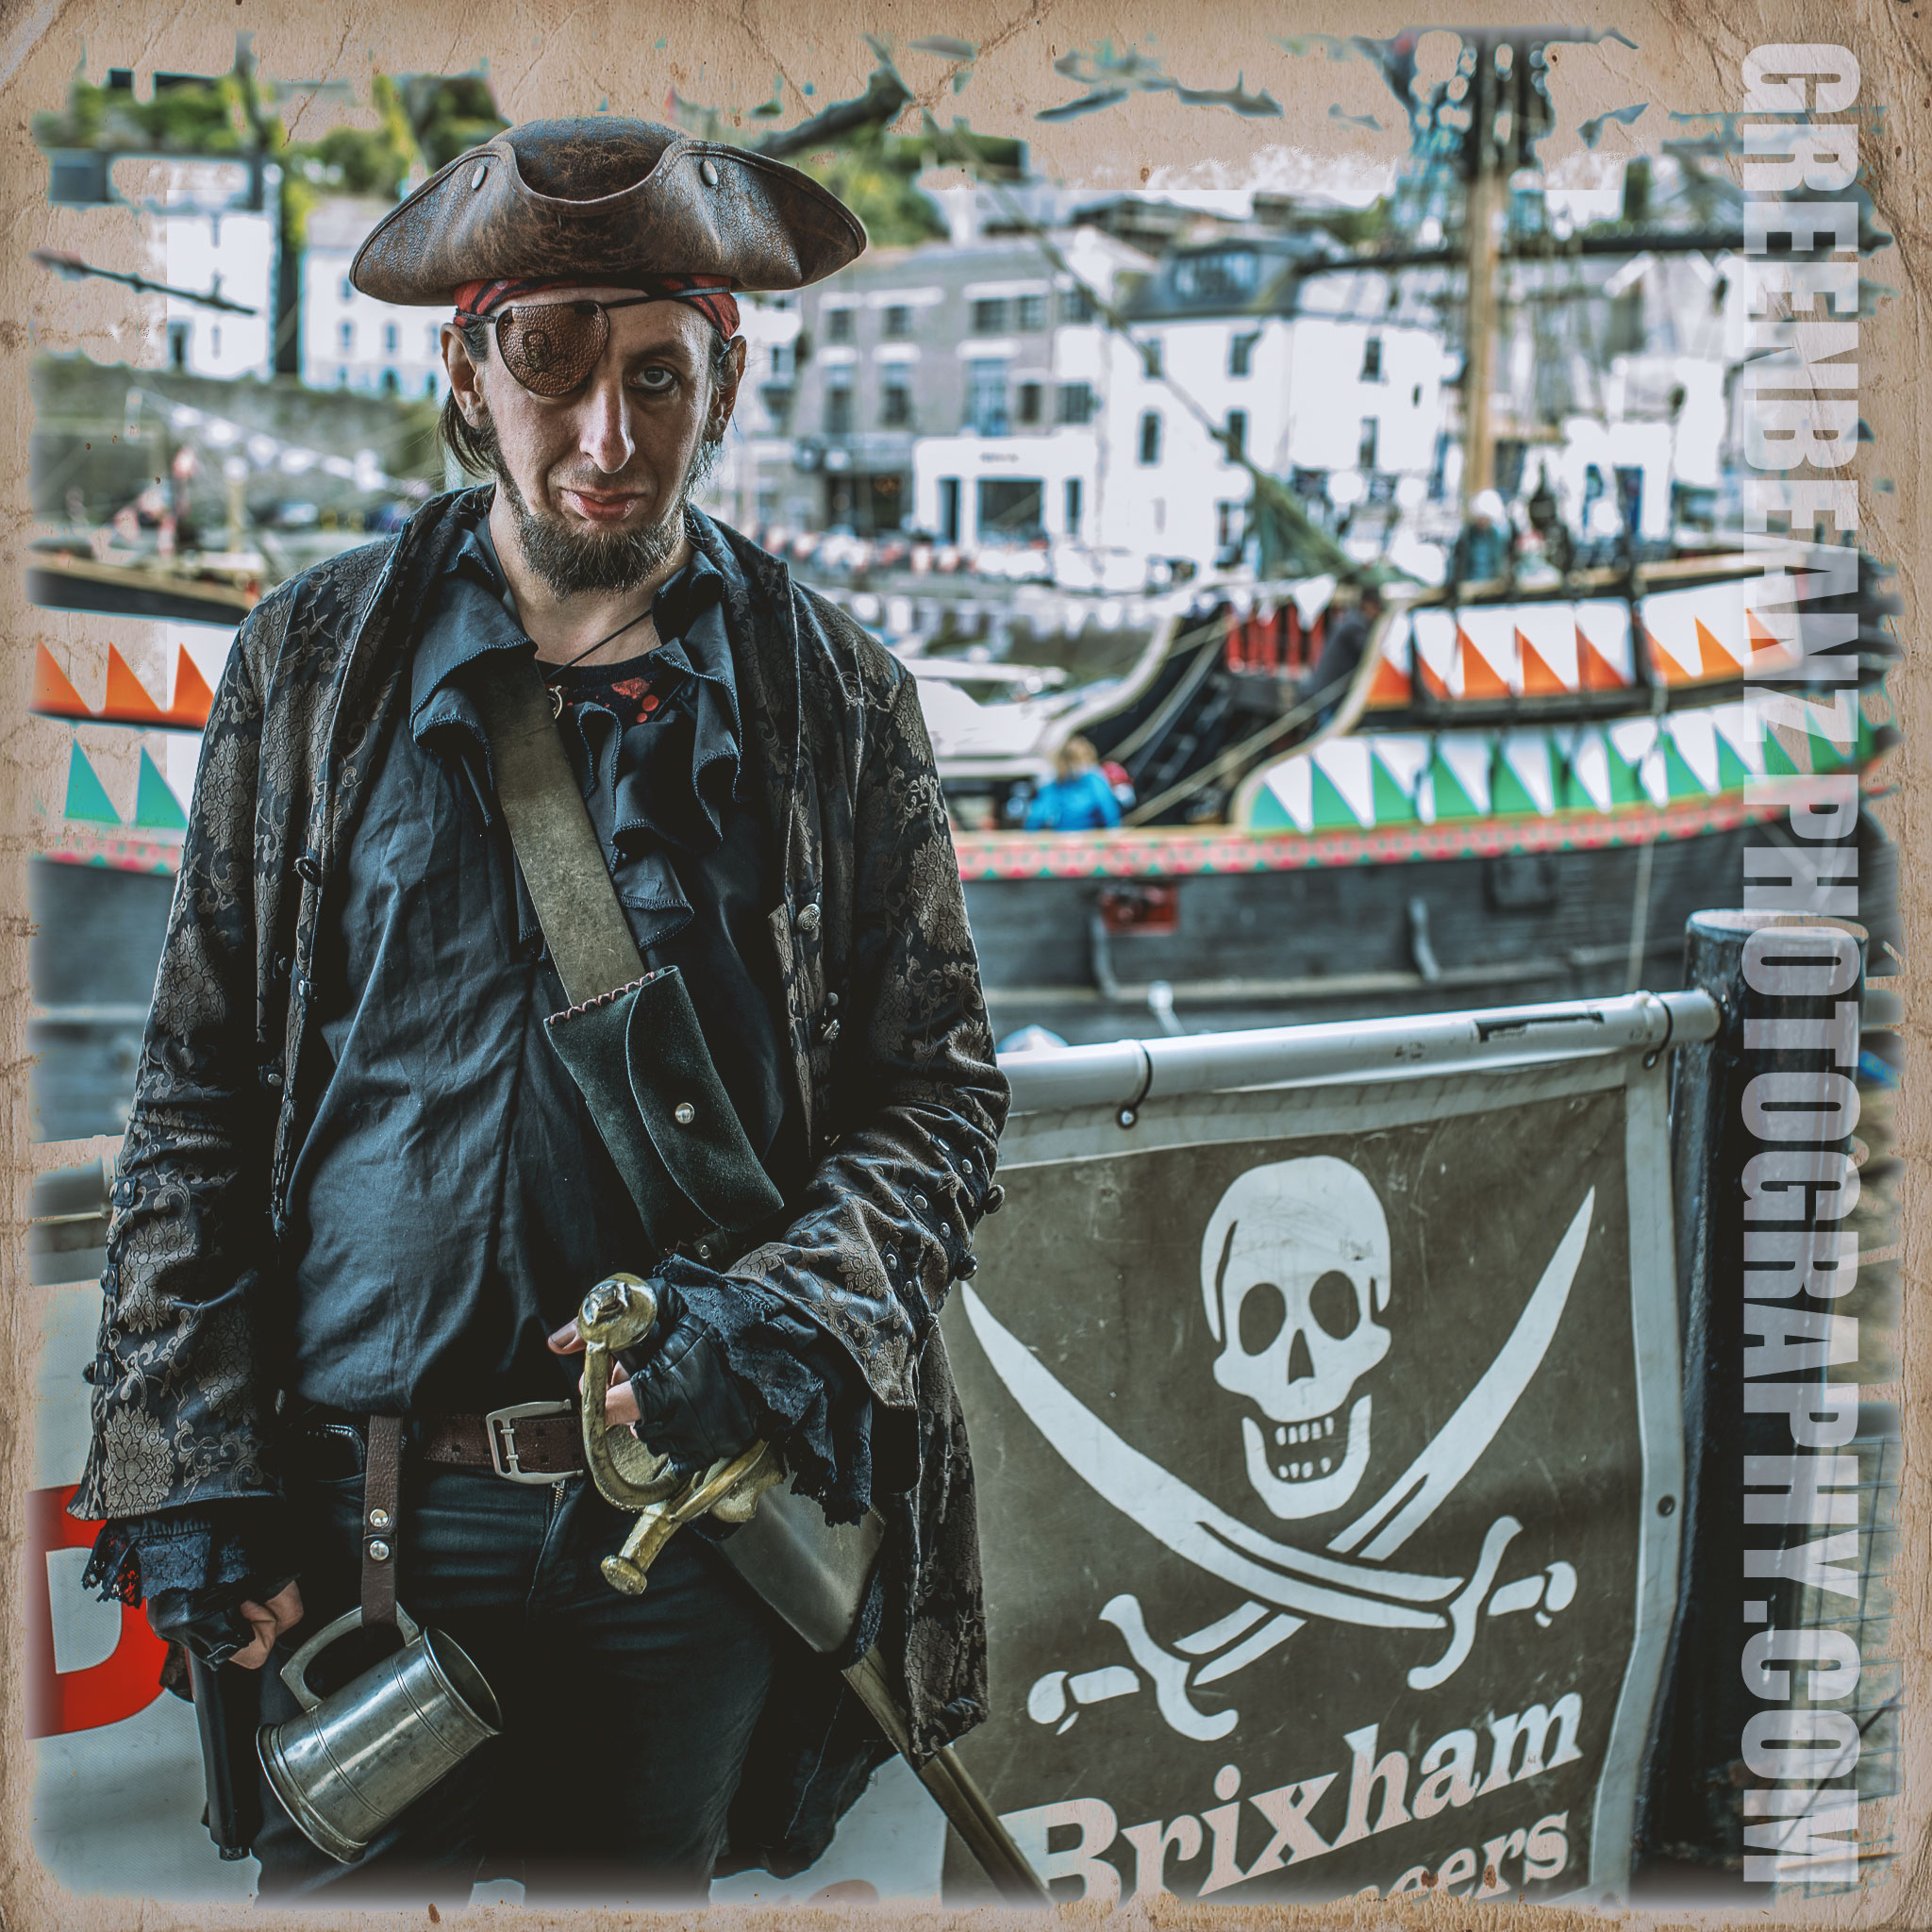 Torbay's Rich Sandford, Pirate, Actor, Model. Extra at Brixham Harbor